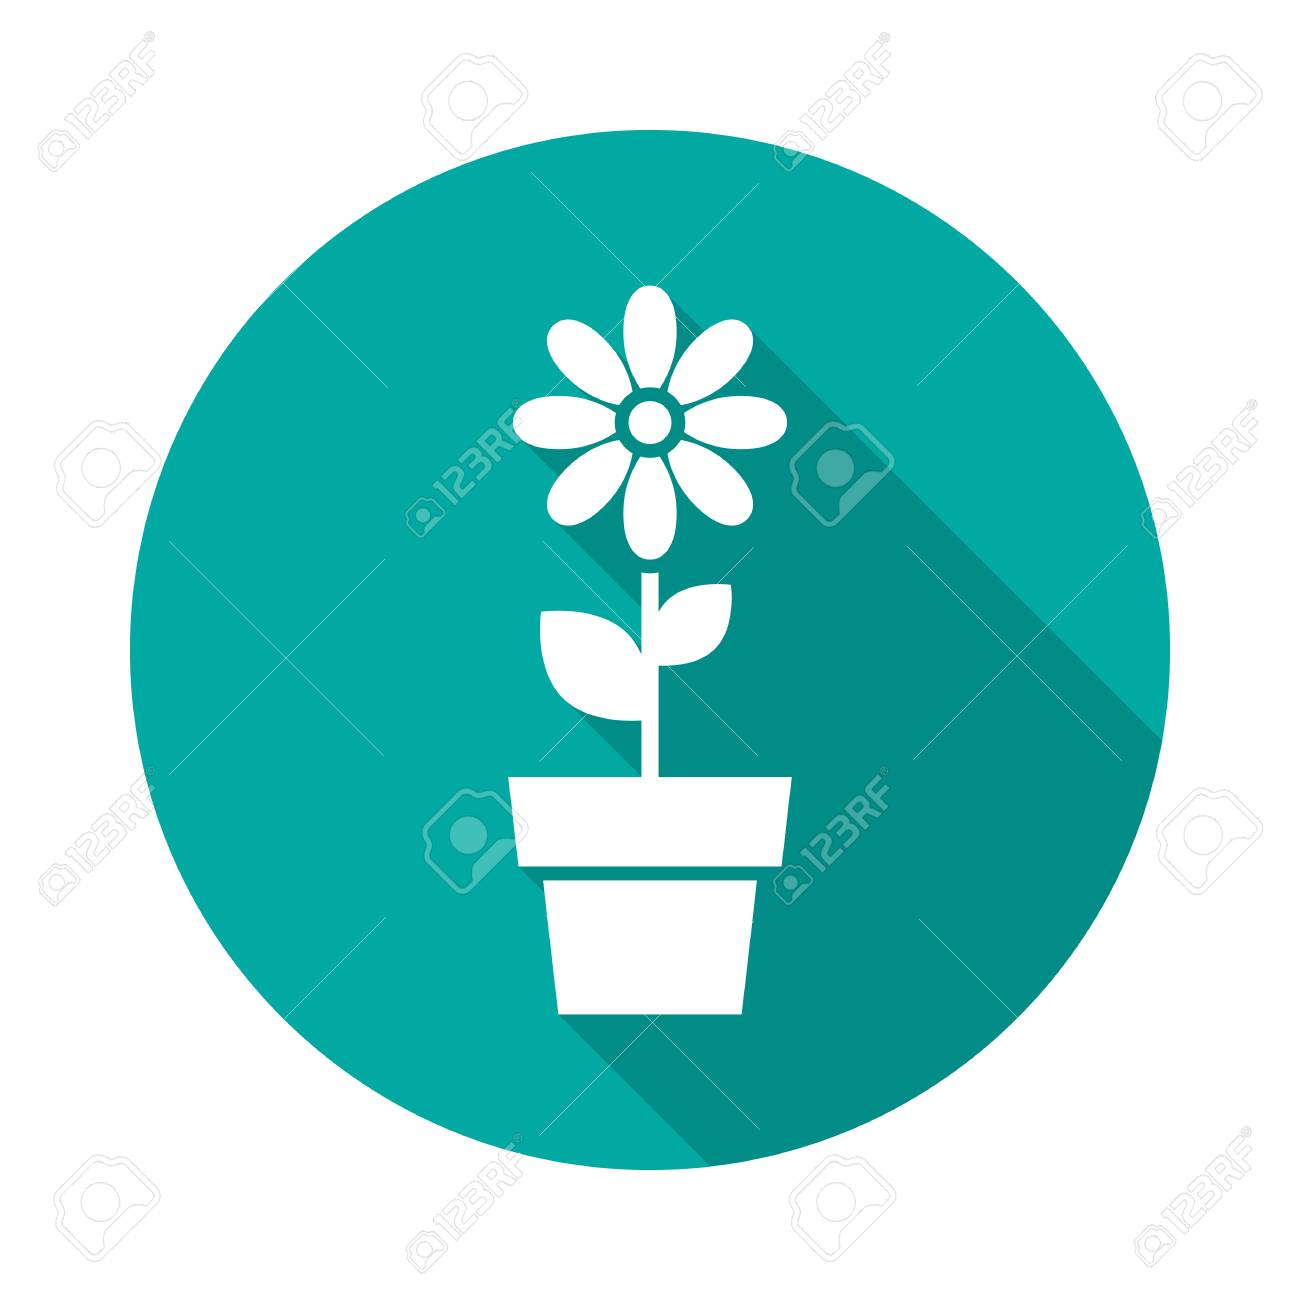 90388529-flower-in-pot-circle-icon-with-long-shadow-flat-design-style-flower-simple-silhouette-modern-minimal.jpg